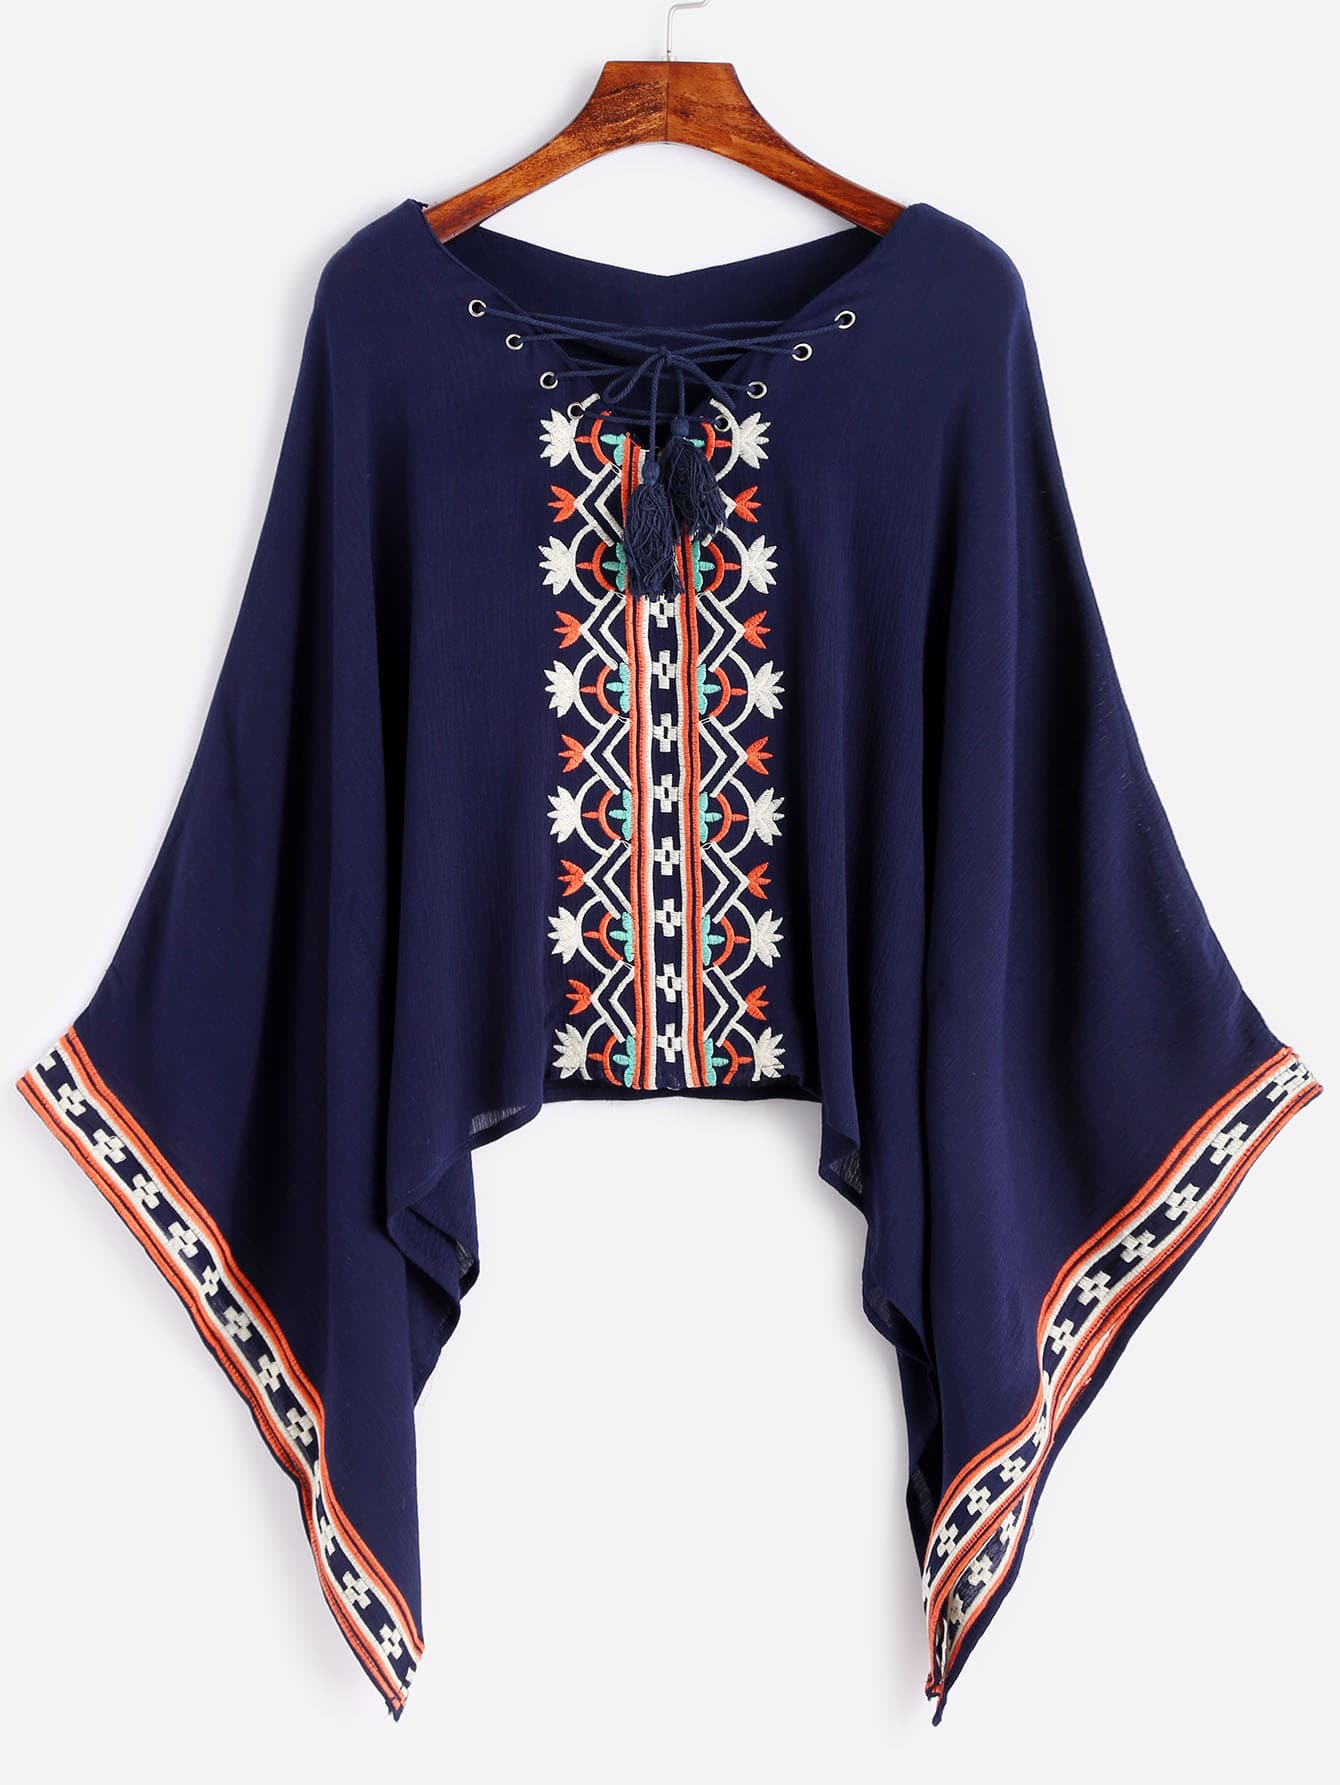 Navy Lace Up Embroidered BlouseNavy Lace Up Embroidered Blouse<br><br>color: Navy<br>size: one-size